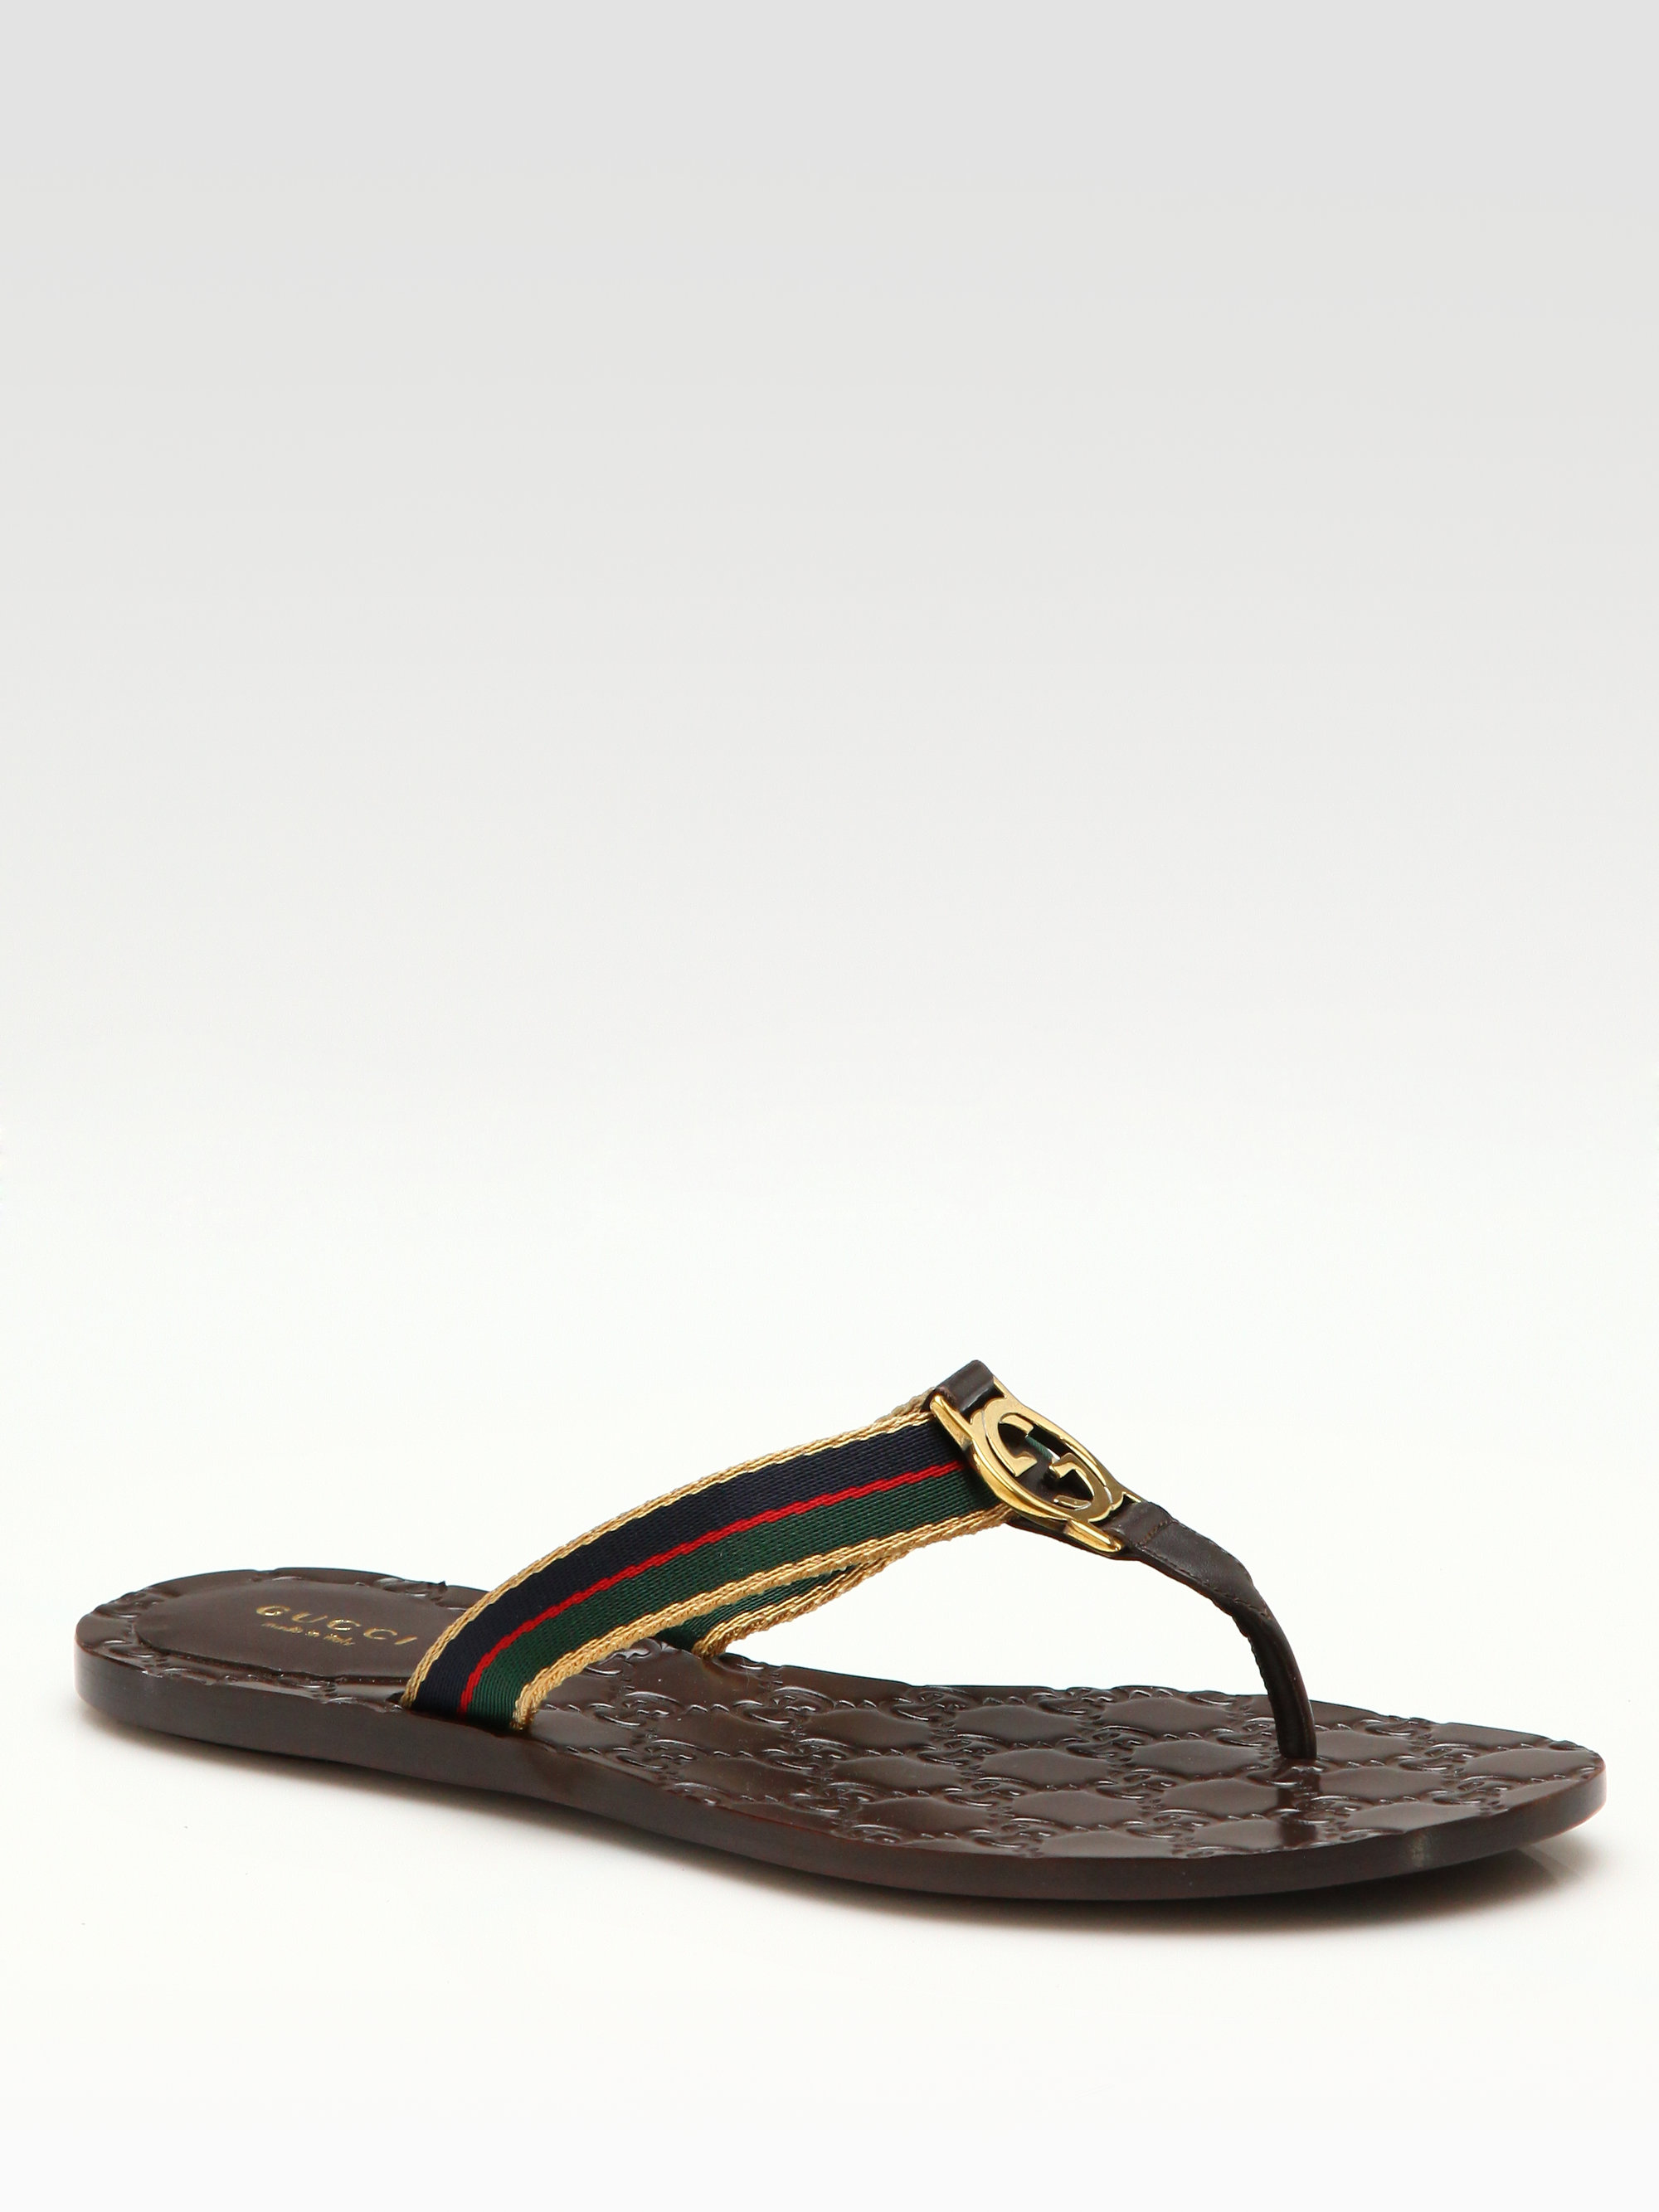 022be1caf23c Lyst - Gucci Gg Thong Sandals in Brown